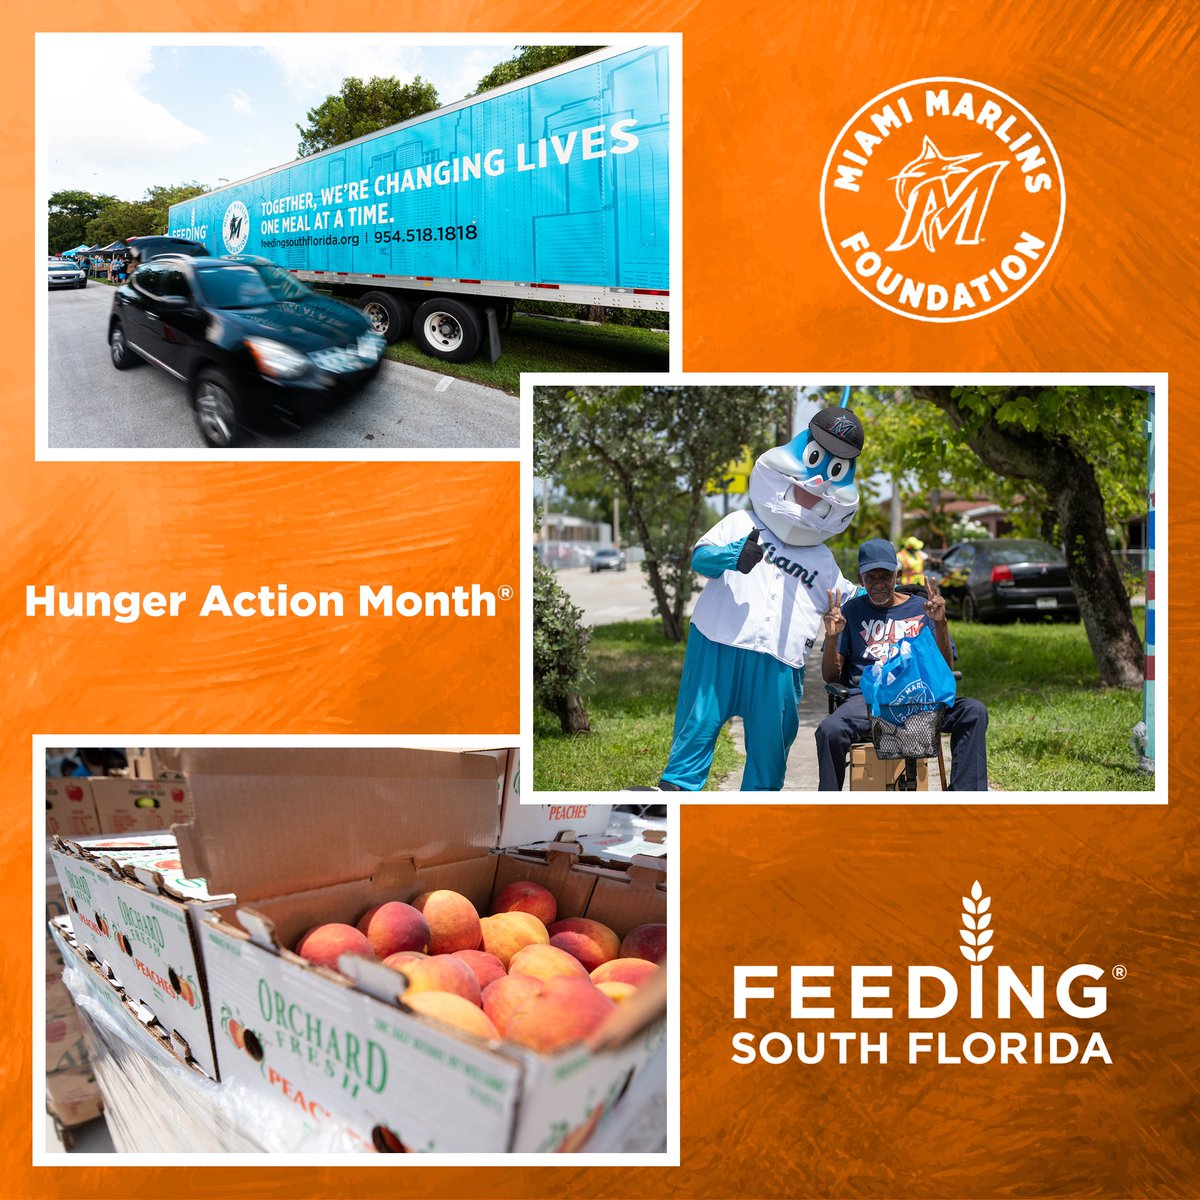 September 17th is #HungerActionDay! This nationwide initiative created by @FeedingAmerica is designed to raise awareness about the issue of hunger in America. The Marlins Foundation is grateful for our partnership with @FeedingSouthFL, who help us feed our local community!